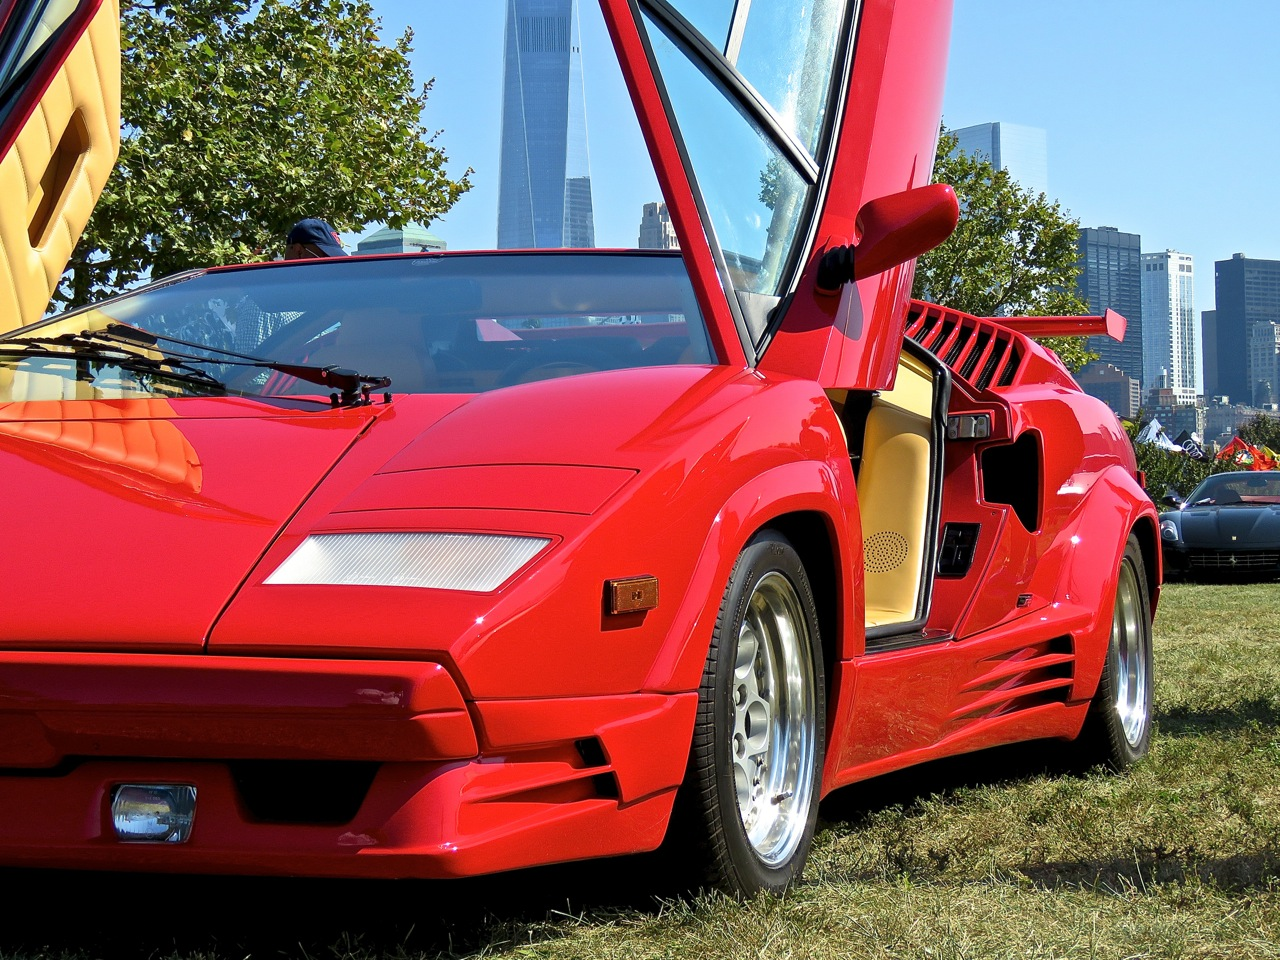 Lamborghini Countach 25th Driven by Purpose 2